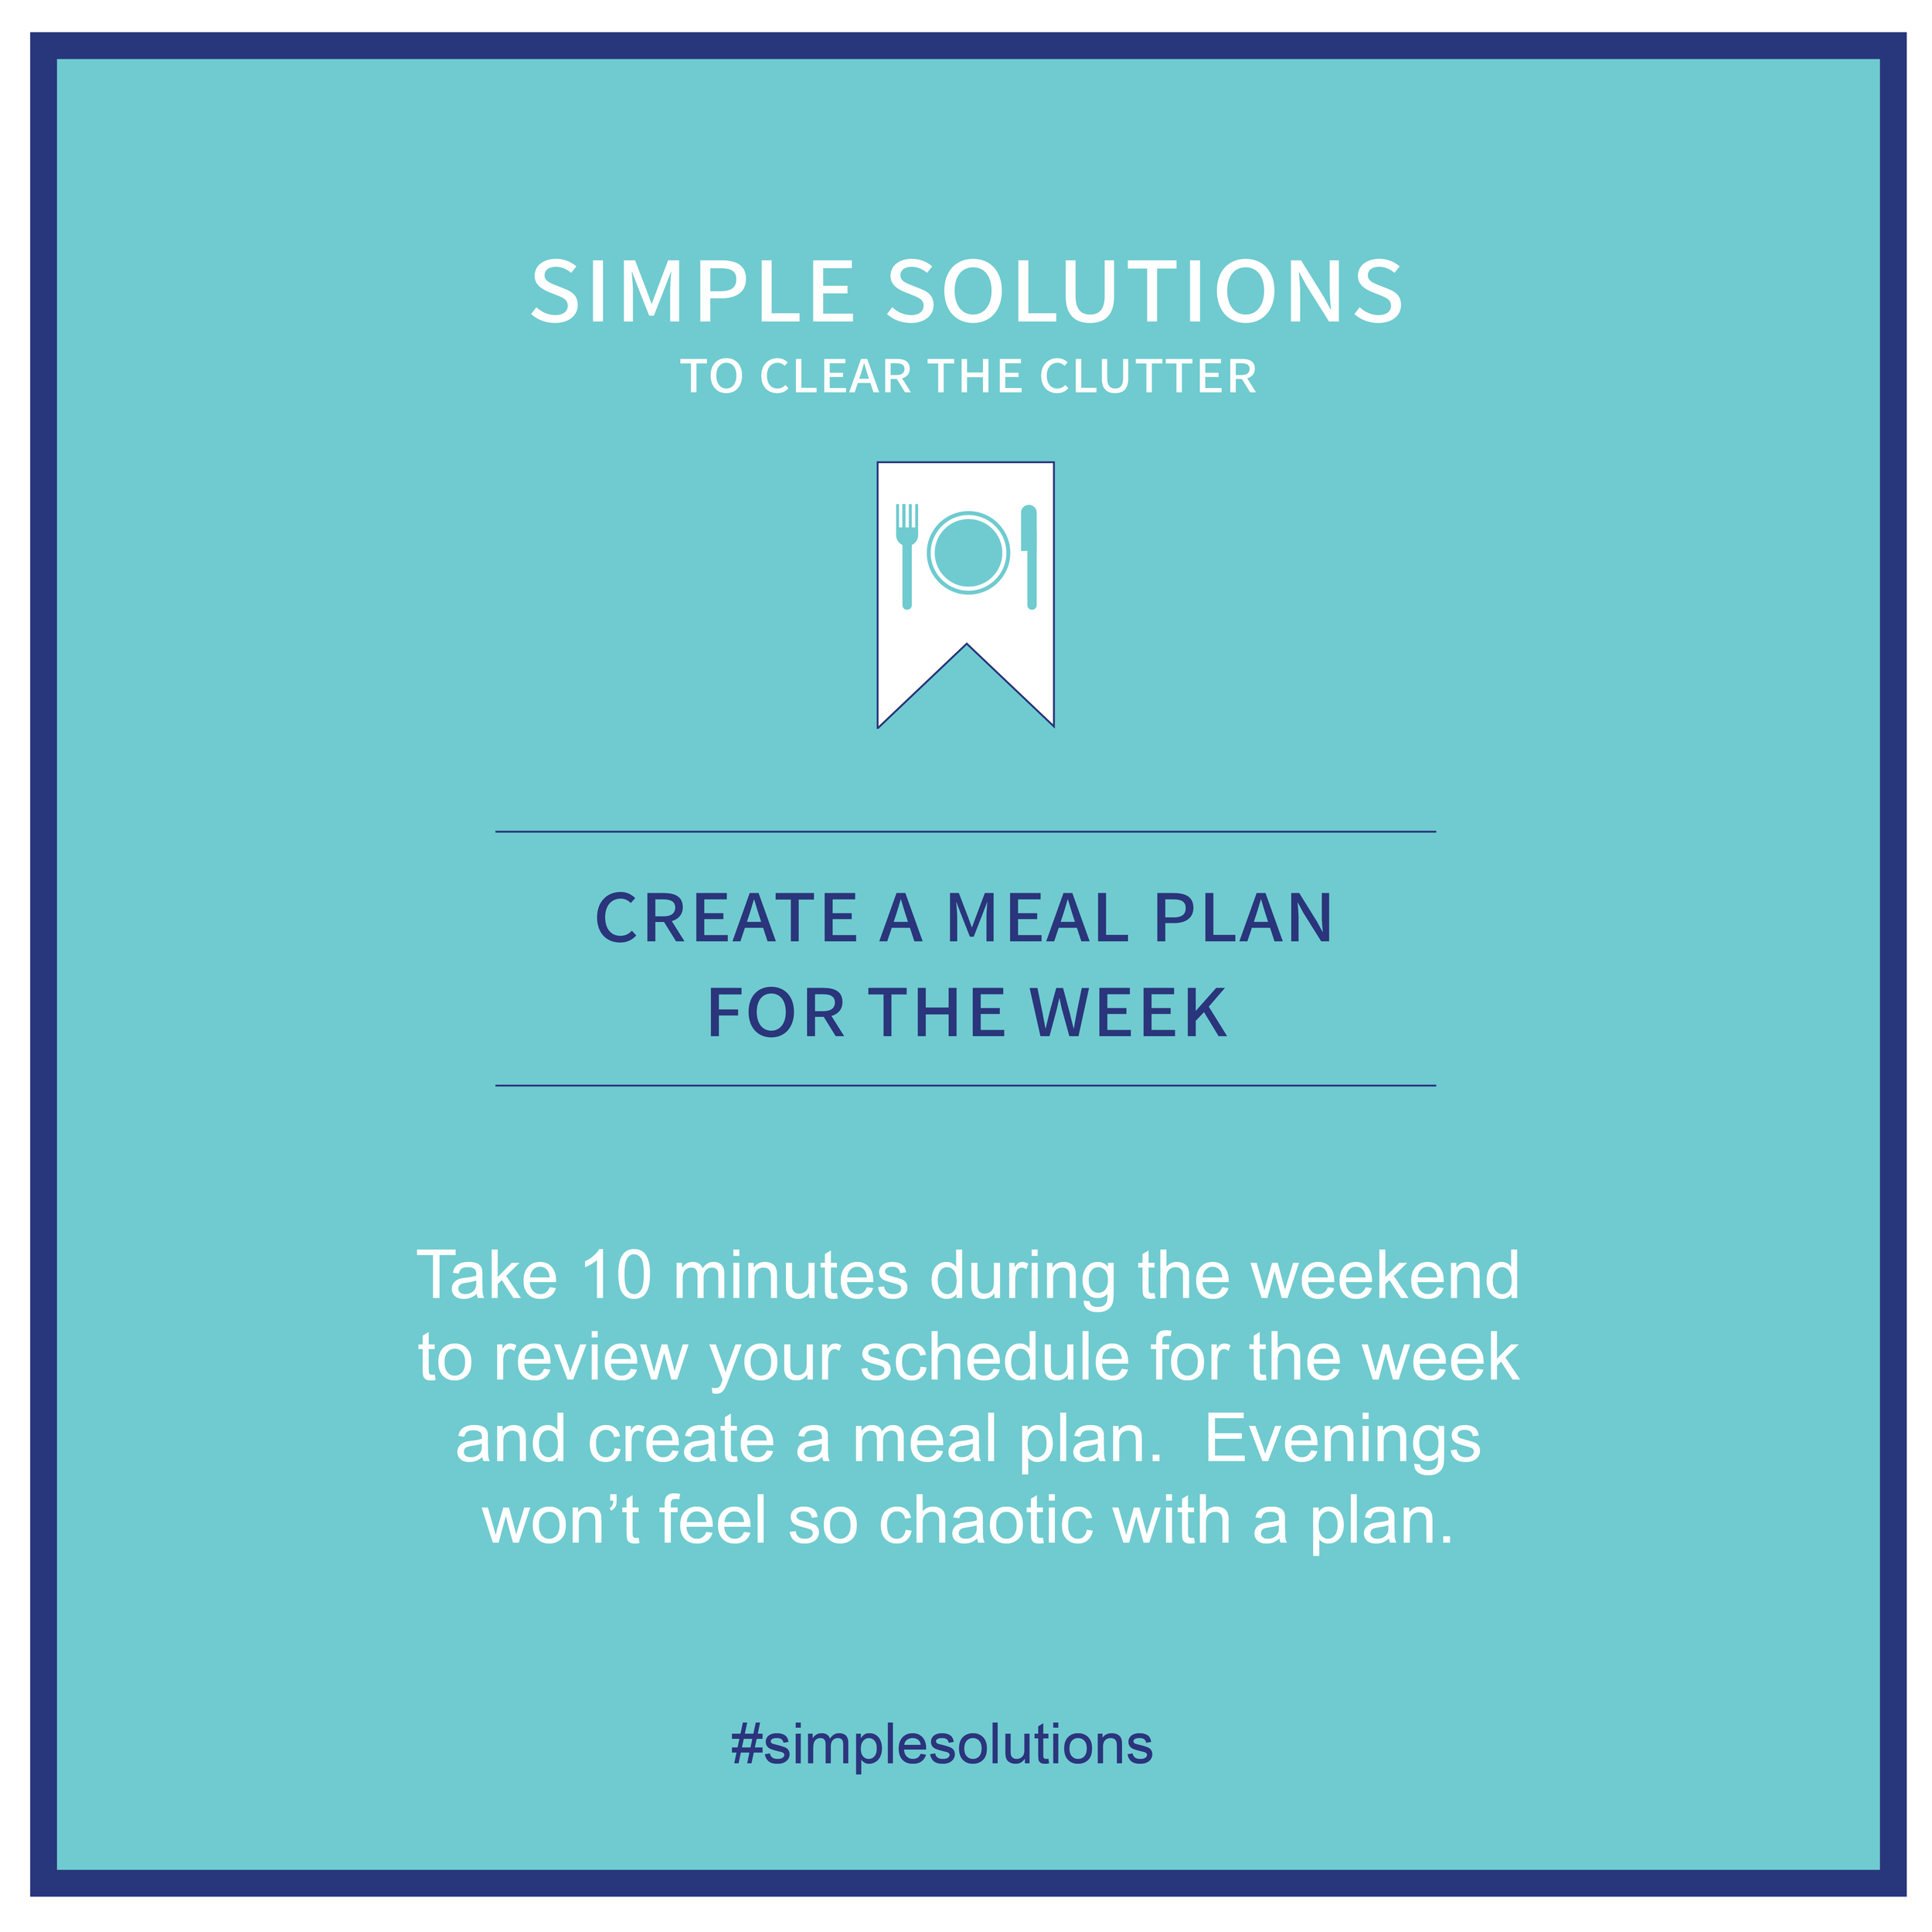 Make Your Weeknights Easier - For someone who loves the spontaneity of summer but functions better with routine, I start to crave a fresh start about this time each year. So when school begins I take the opportunity to steer our family back towards a more predictable schedule. I look forward to the rhythm of meals around our table but it takes a little bit of preparation to get us there.Investing 10 minutes during the weekend to assess the week ahead, create a simple meal plan and order groceries saves time and builds a little more margin for me to be present during the weekday.